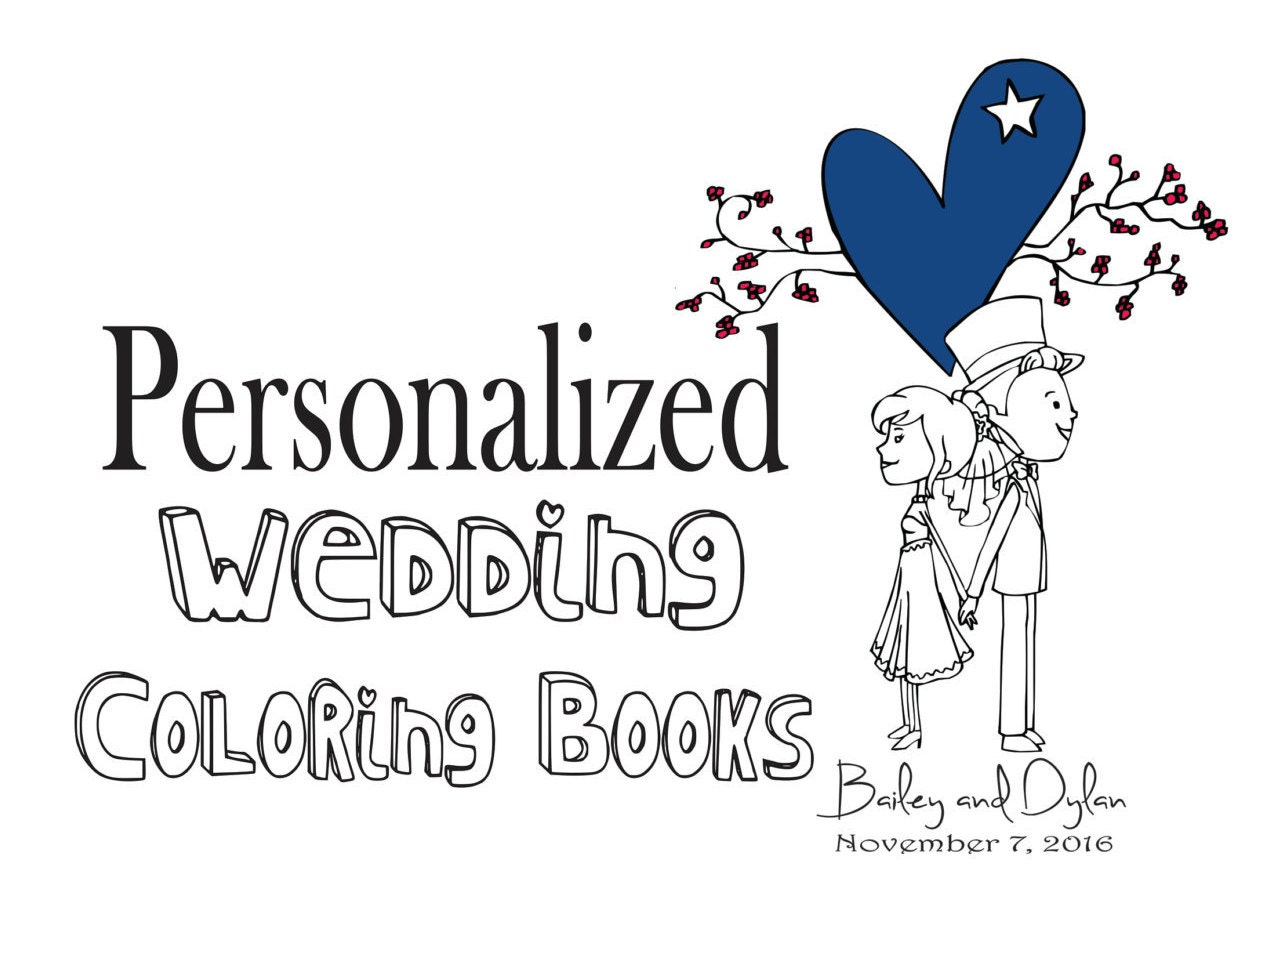 Wedding Coloring book Personalized